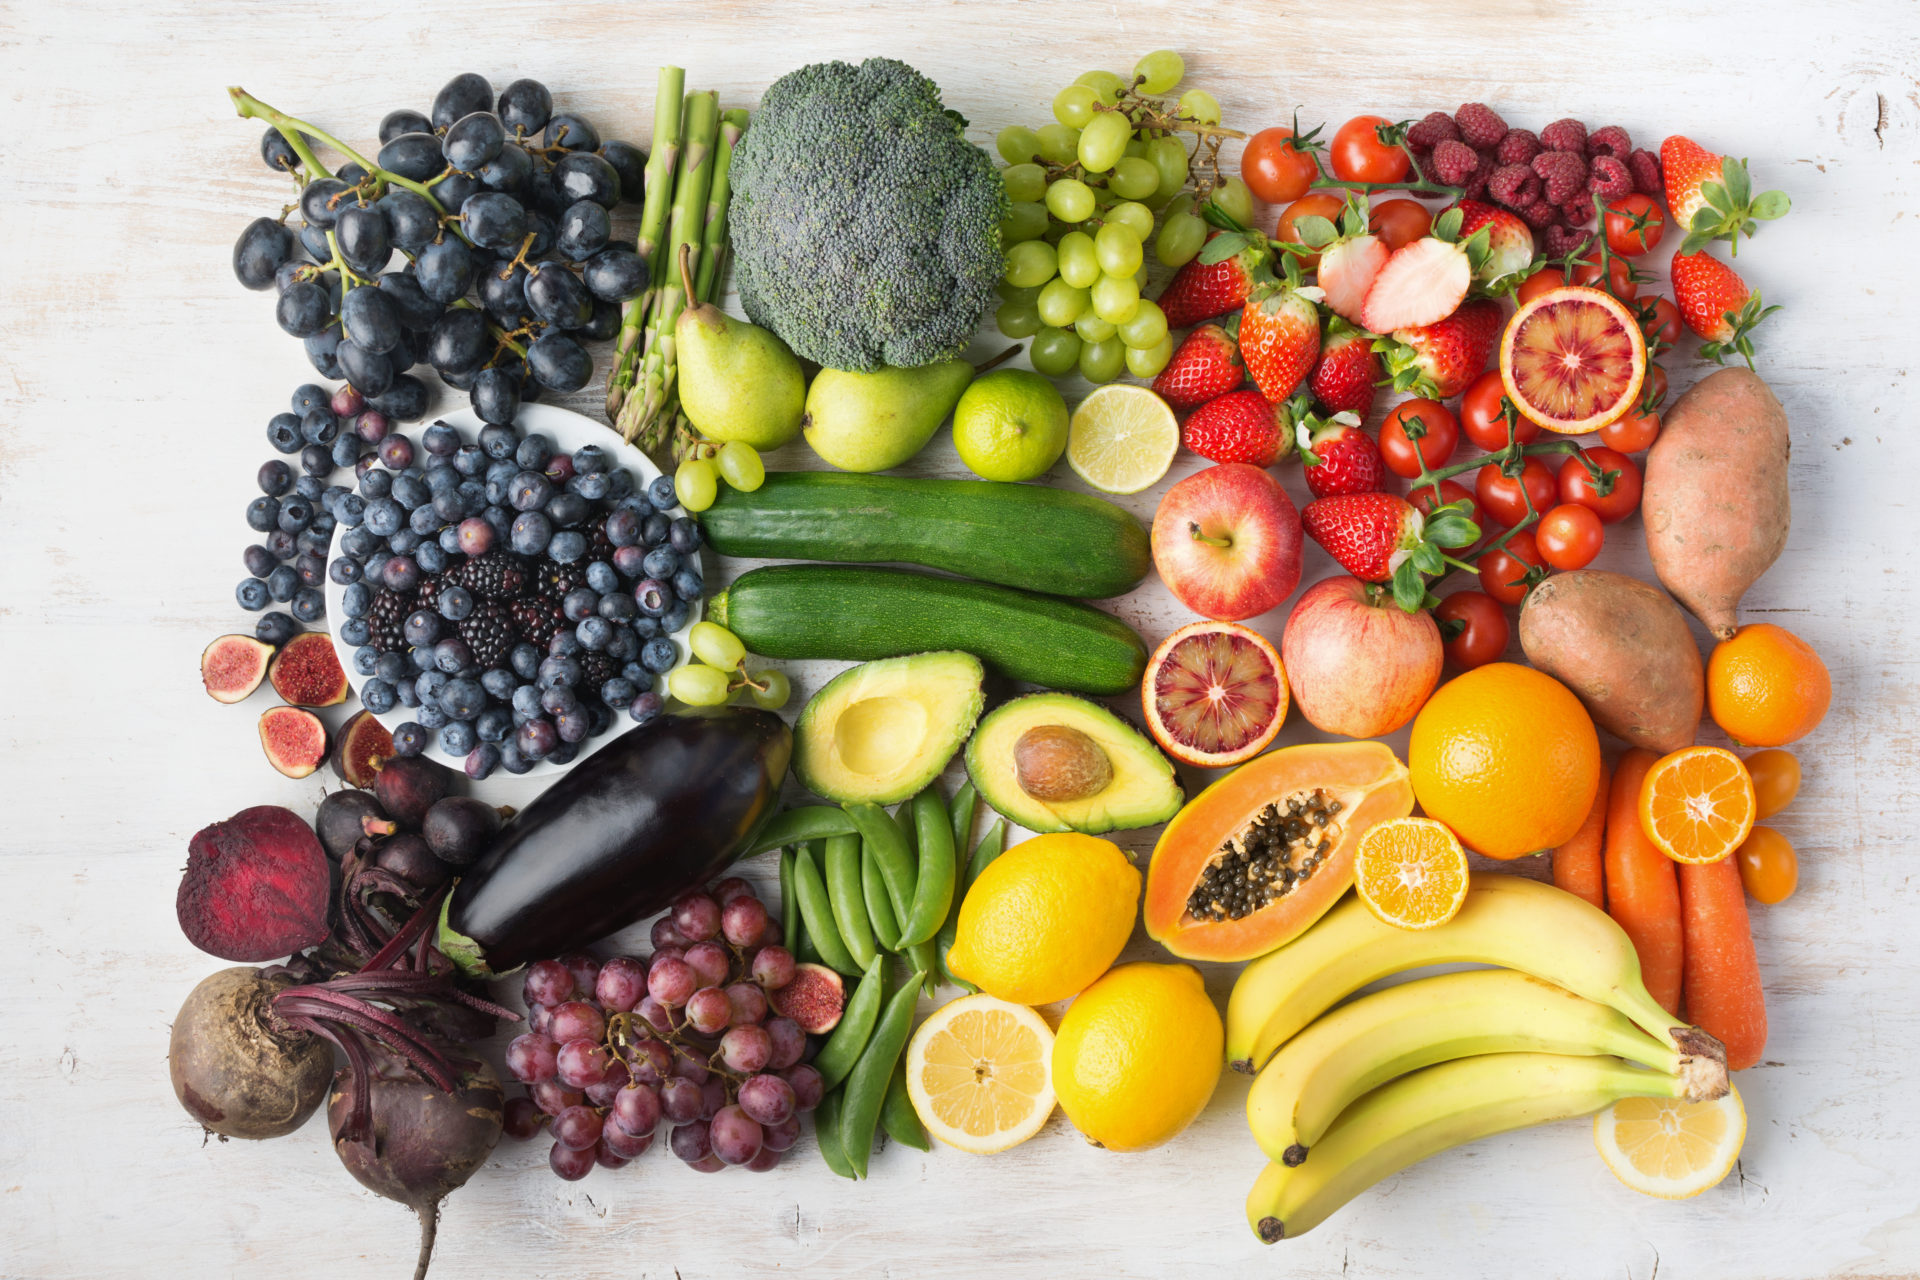 Healthy,Eating,Concept,,Assortment,Of,Rainbow,Fruits,And,Vegetables,,Berries,